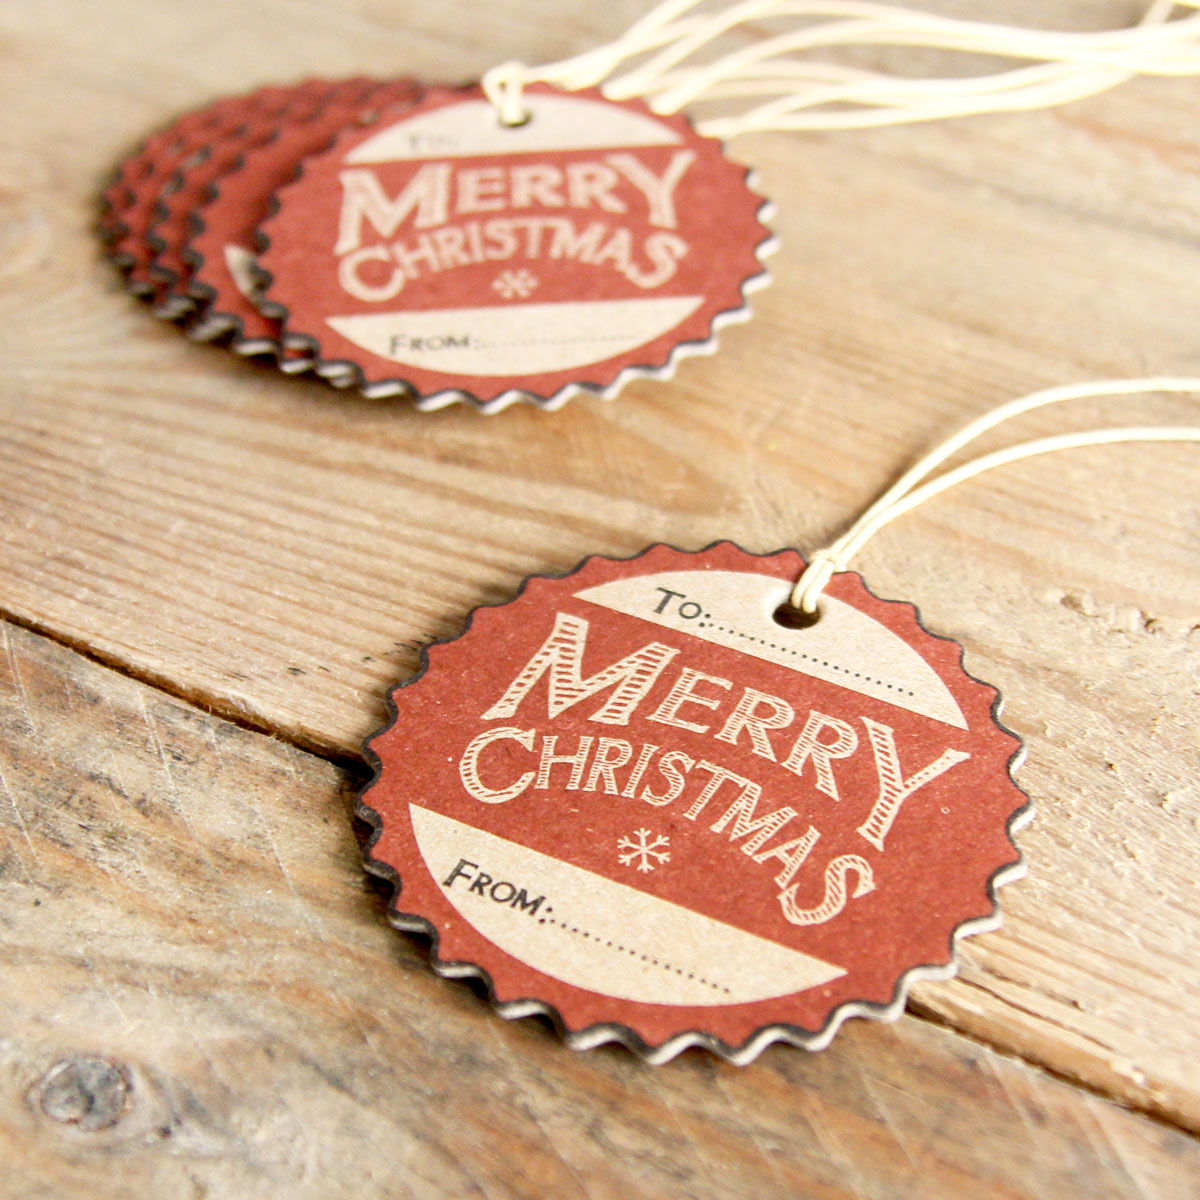 Mr_wonderful_shop_decoracion_navidad_2014_015